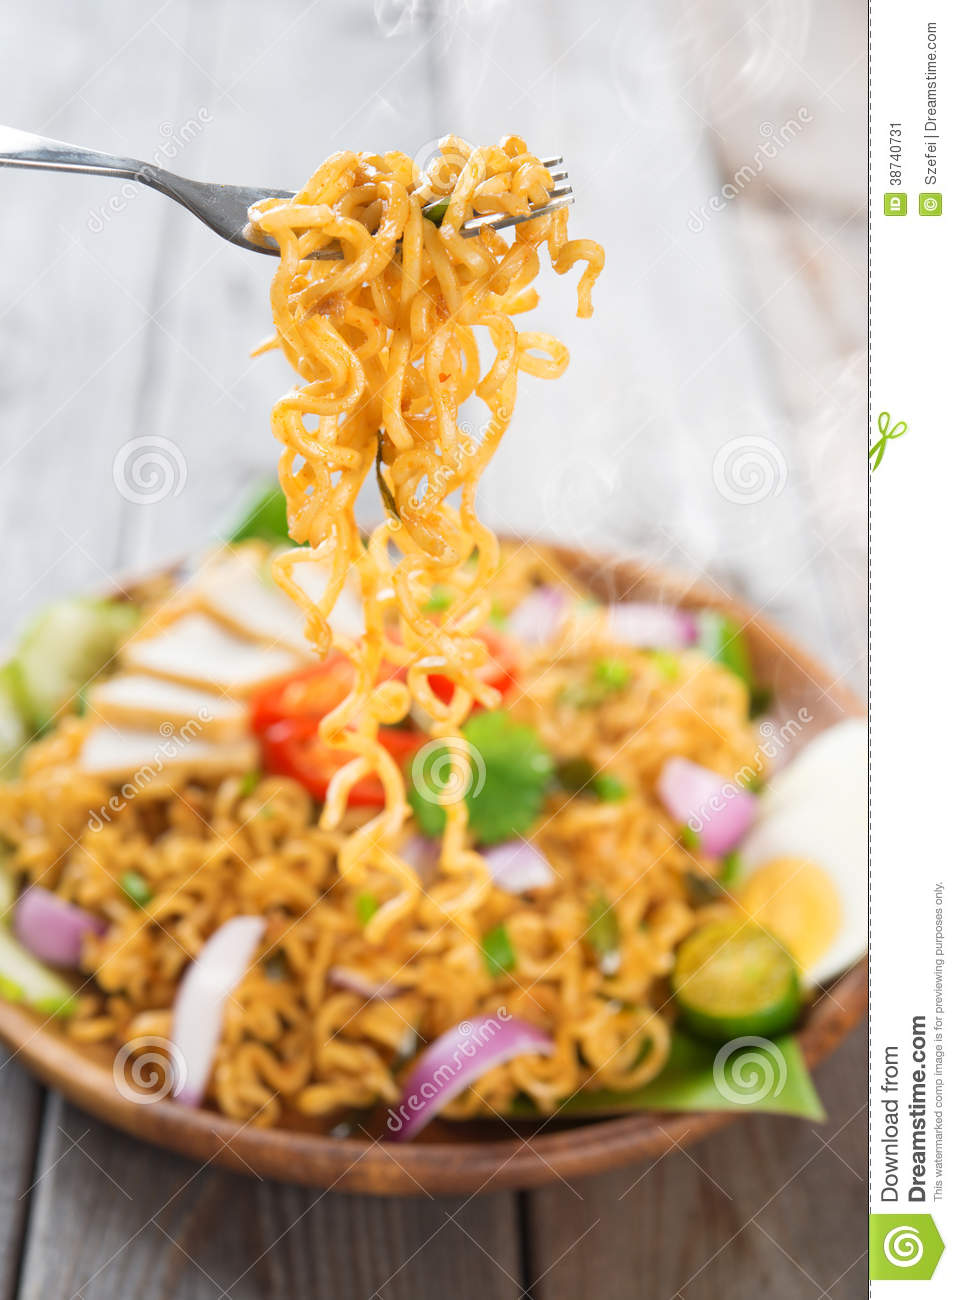 Spicy Fried Curry Instant Noodles Stock Image Image  : spicy fried curry instant noodles malaysian style maggi goreng mamak ready to serve wooden dining table setting fresh hot 38740731 from www.dreamstime.com size 958 x 1300 jpeg 127kB